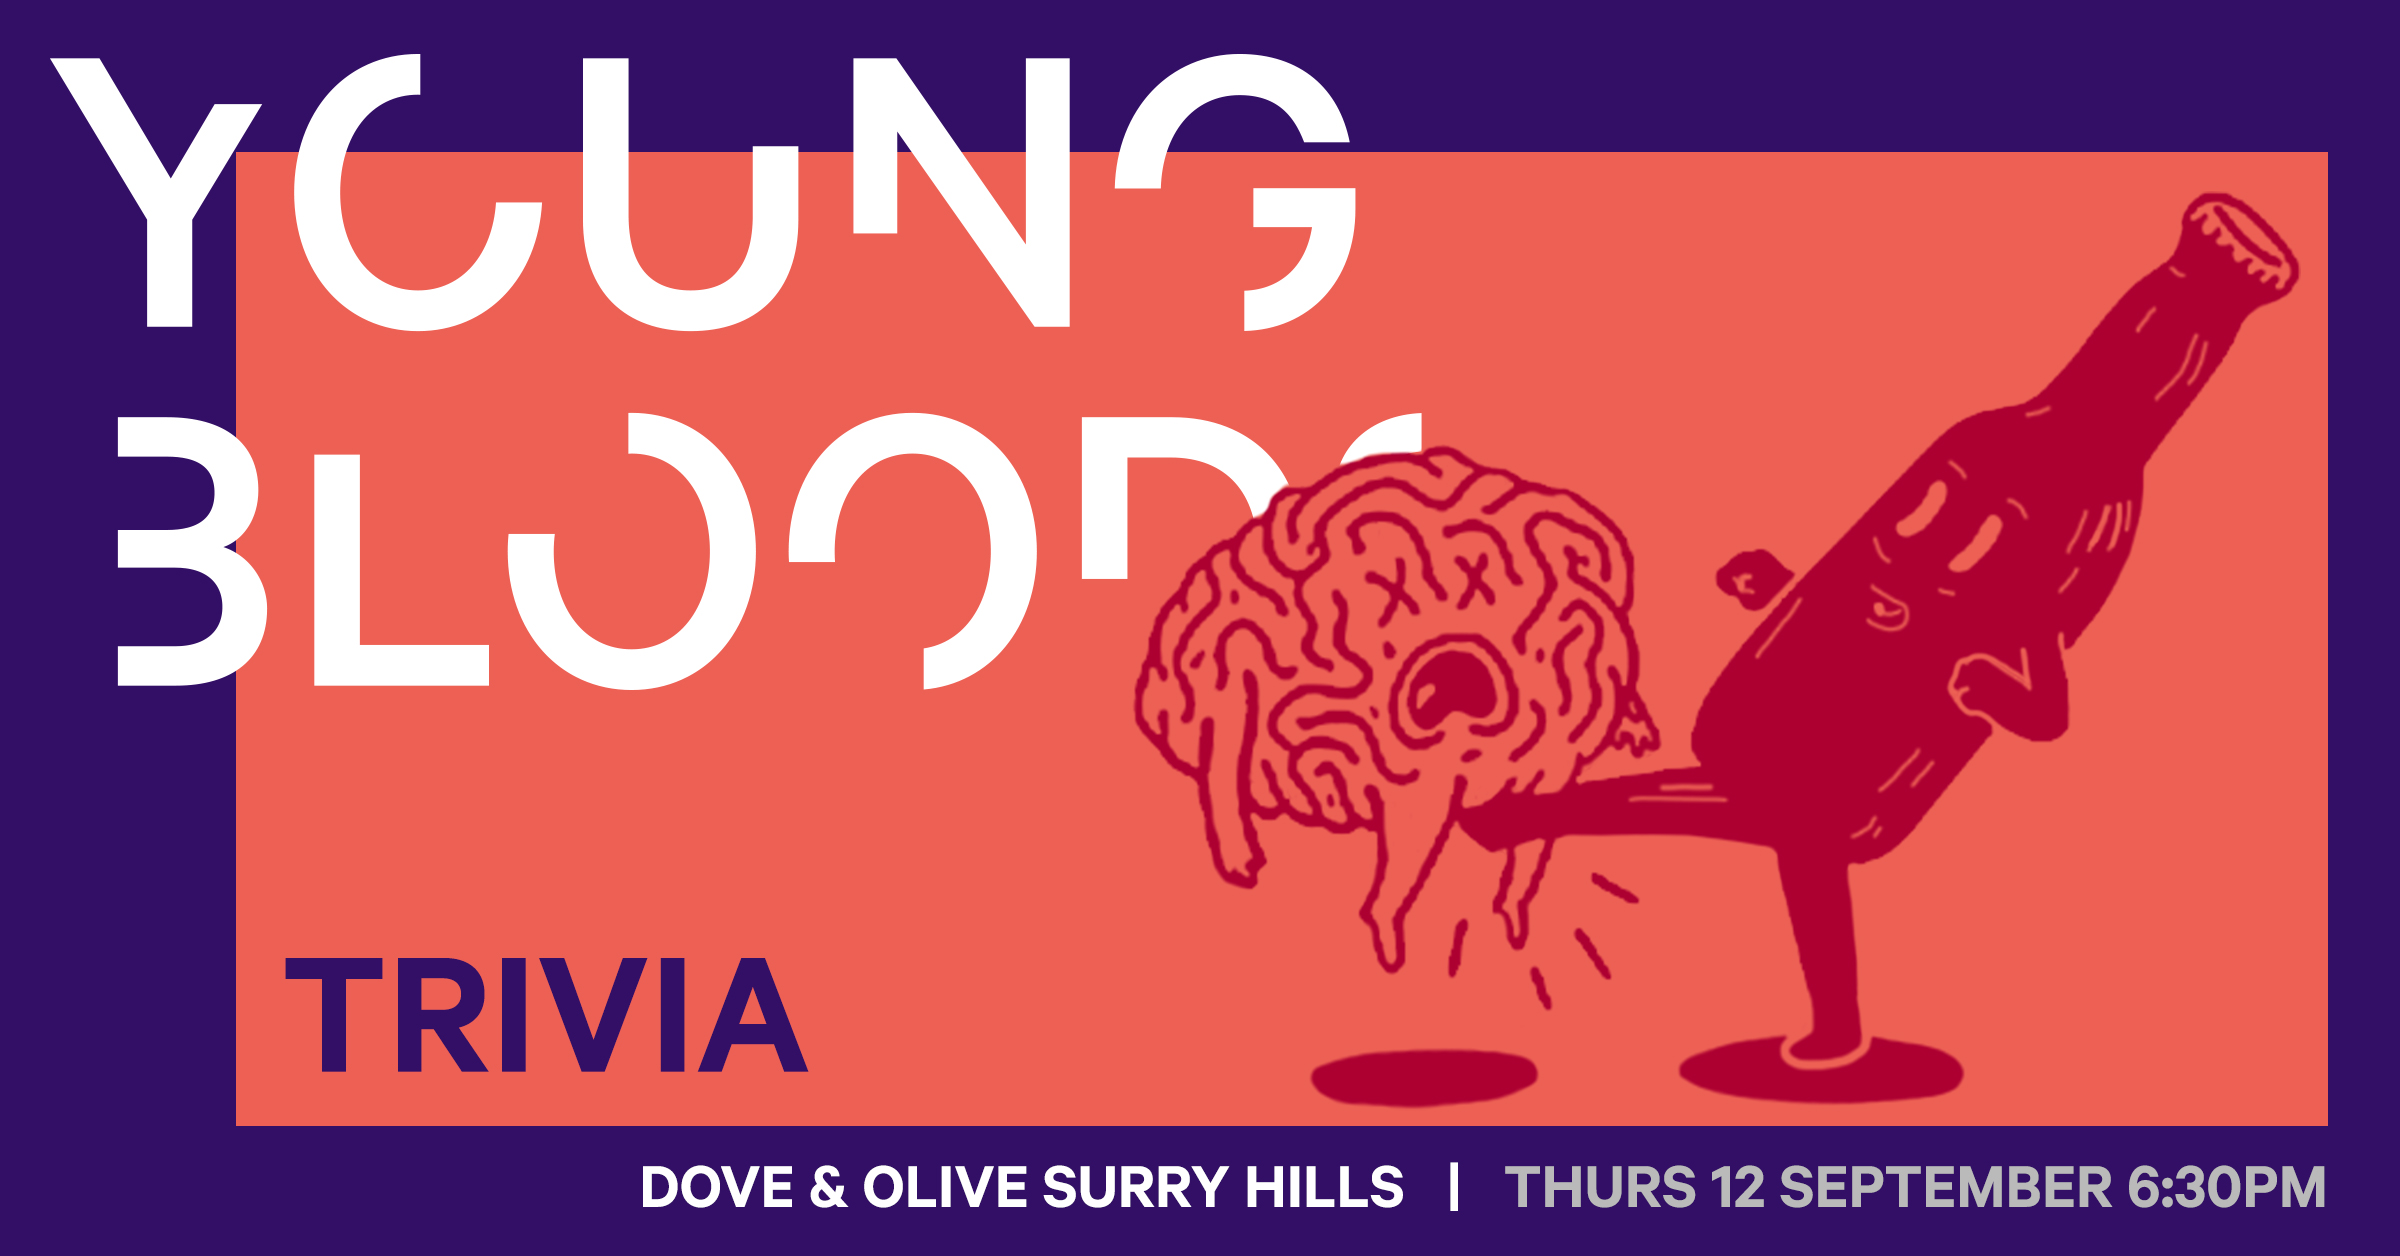 Tickets on sale for Youngbloods NSW Trivia Night – next Thurs, September 12 at Dove & Olive